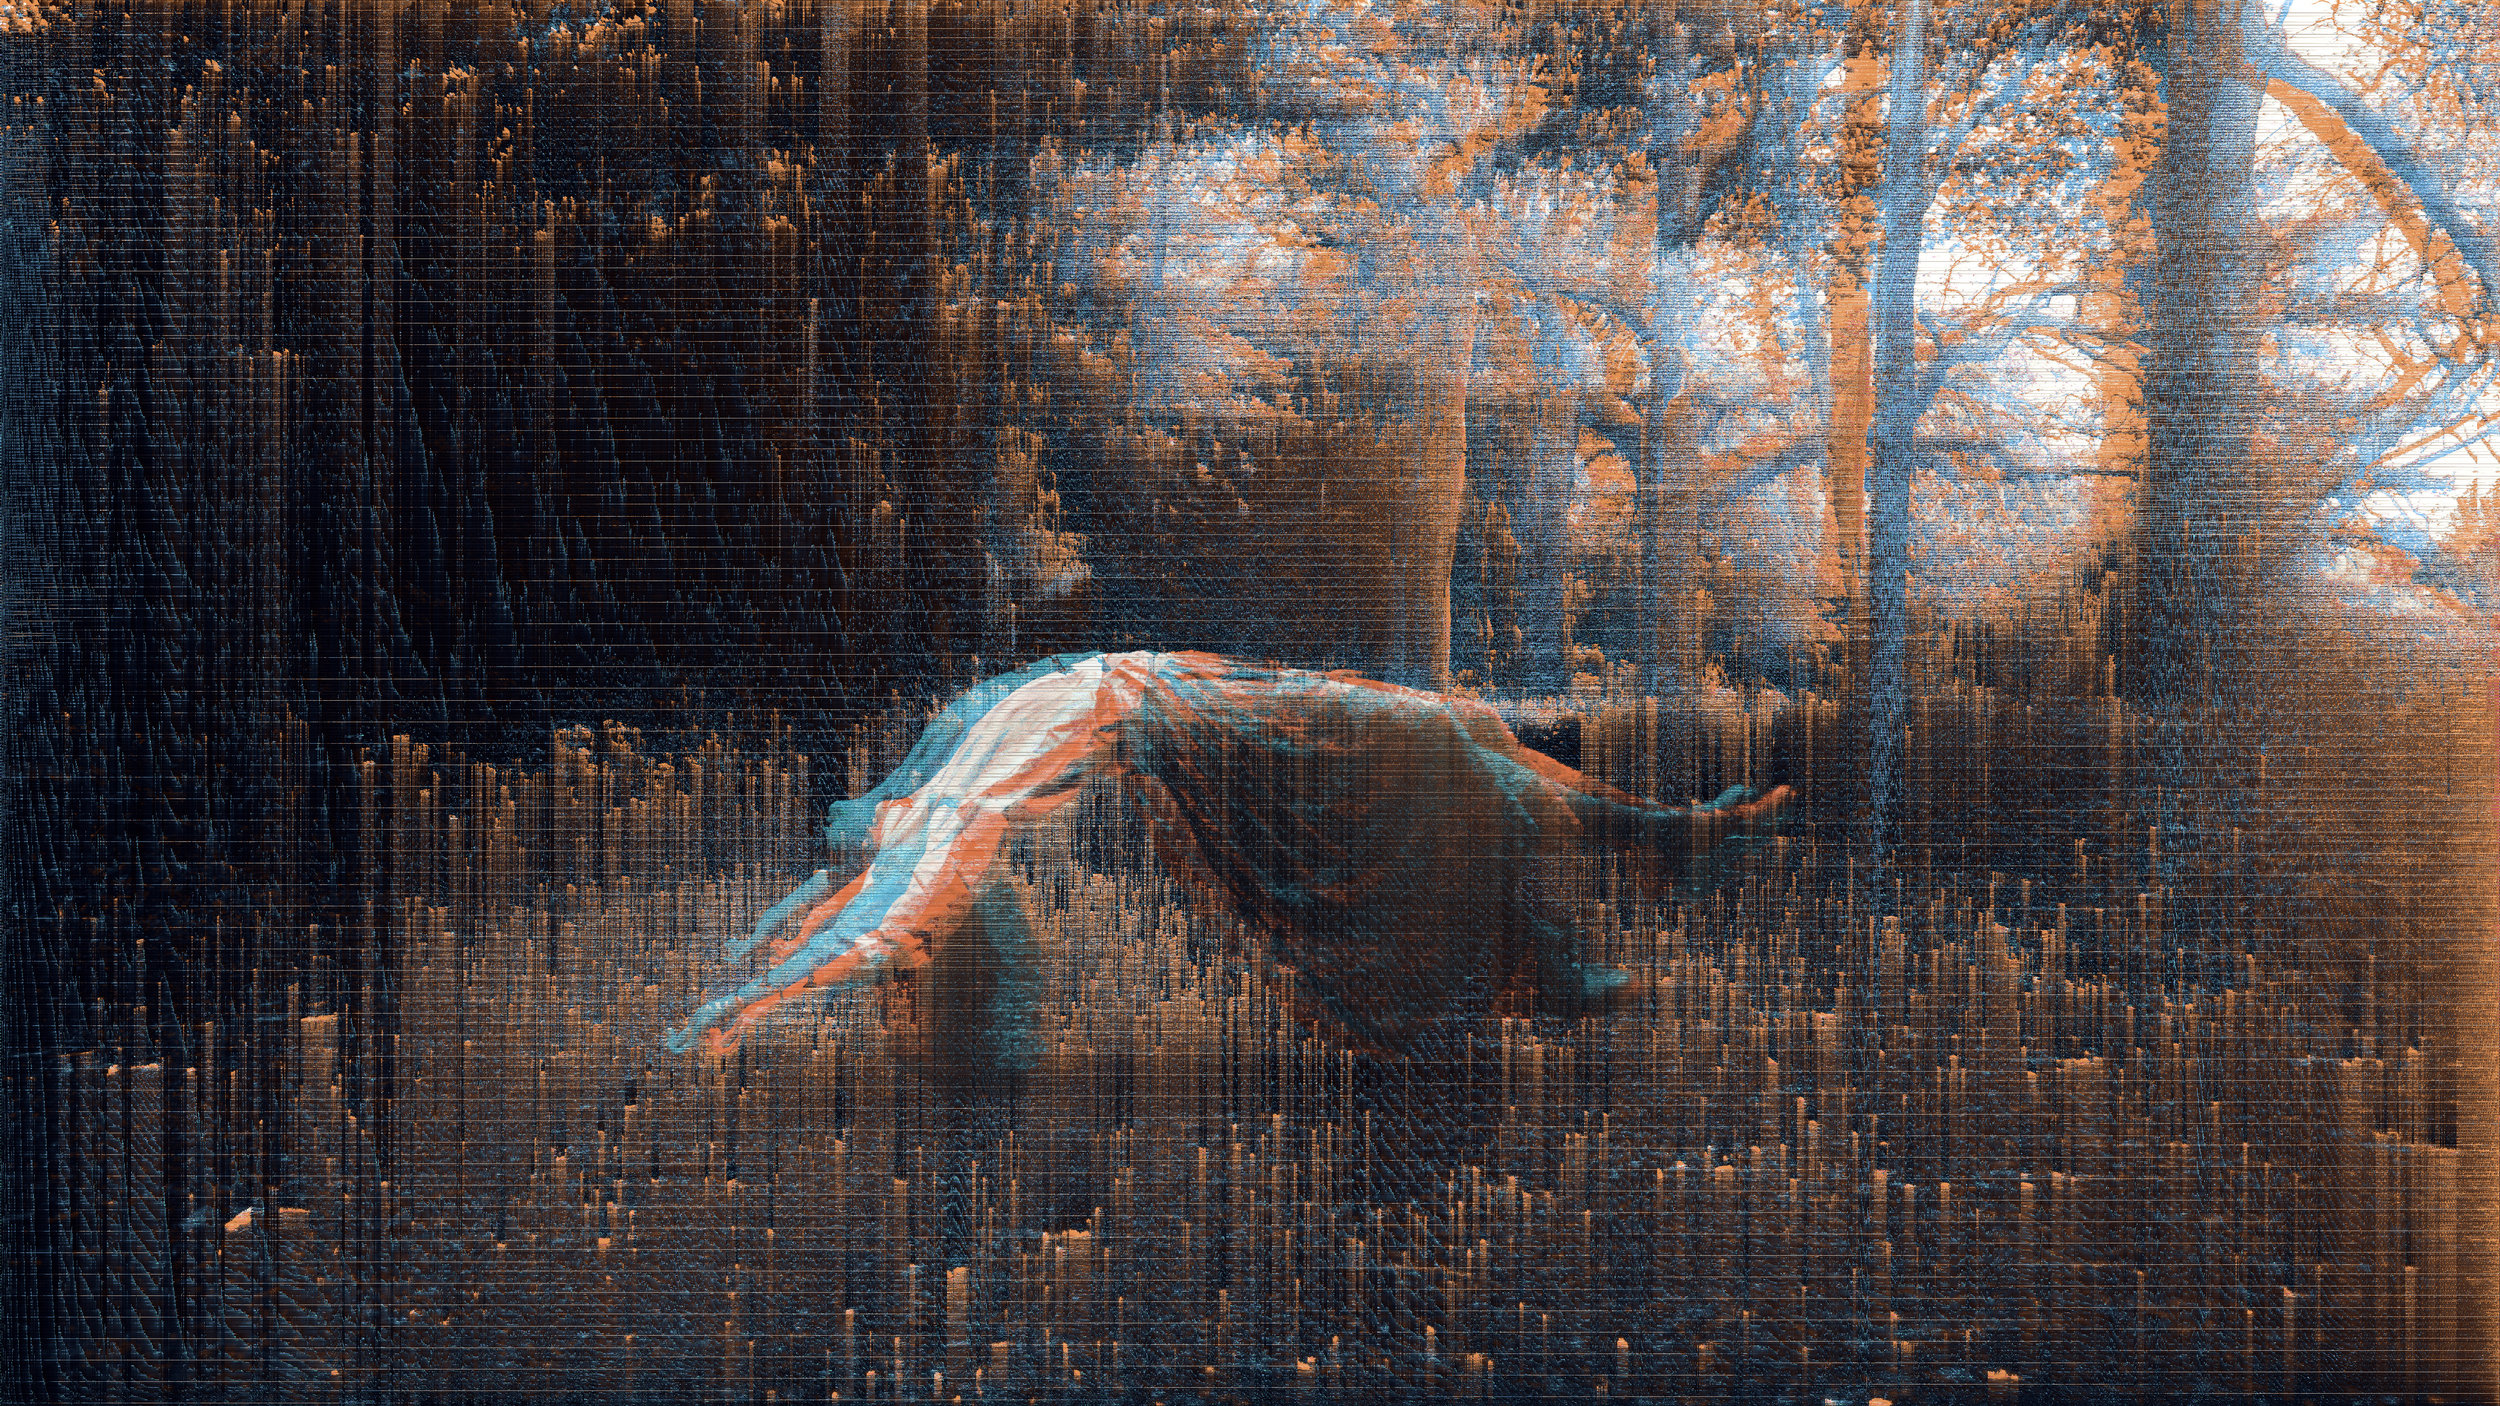 anaglych_22